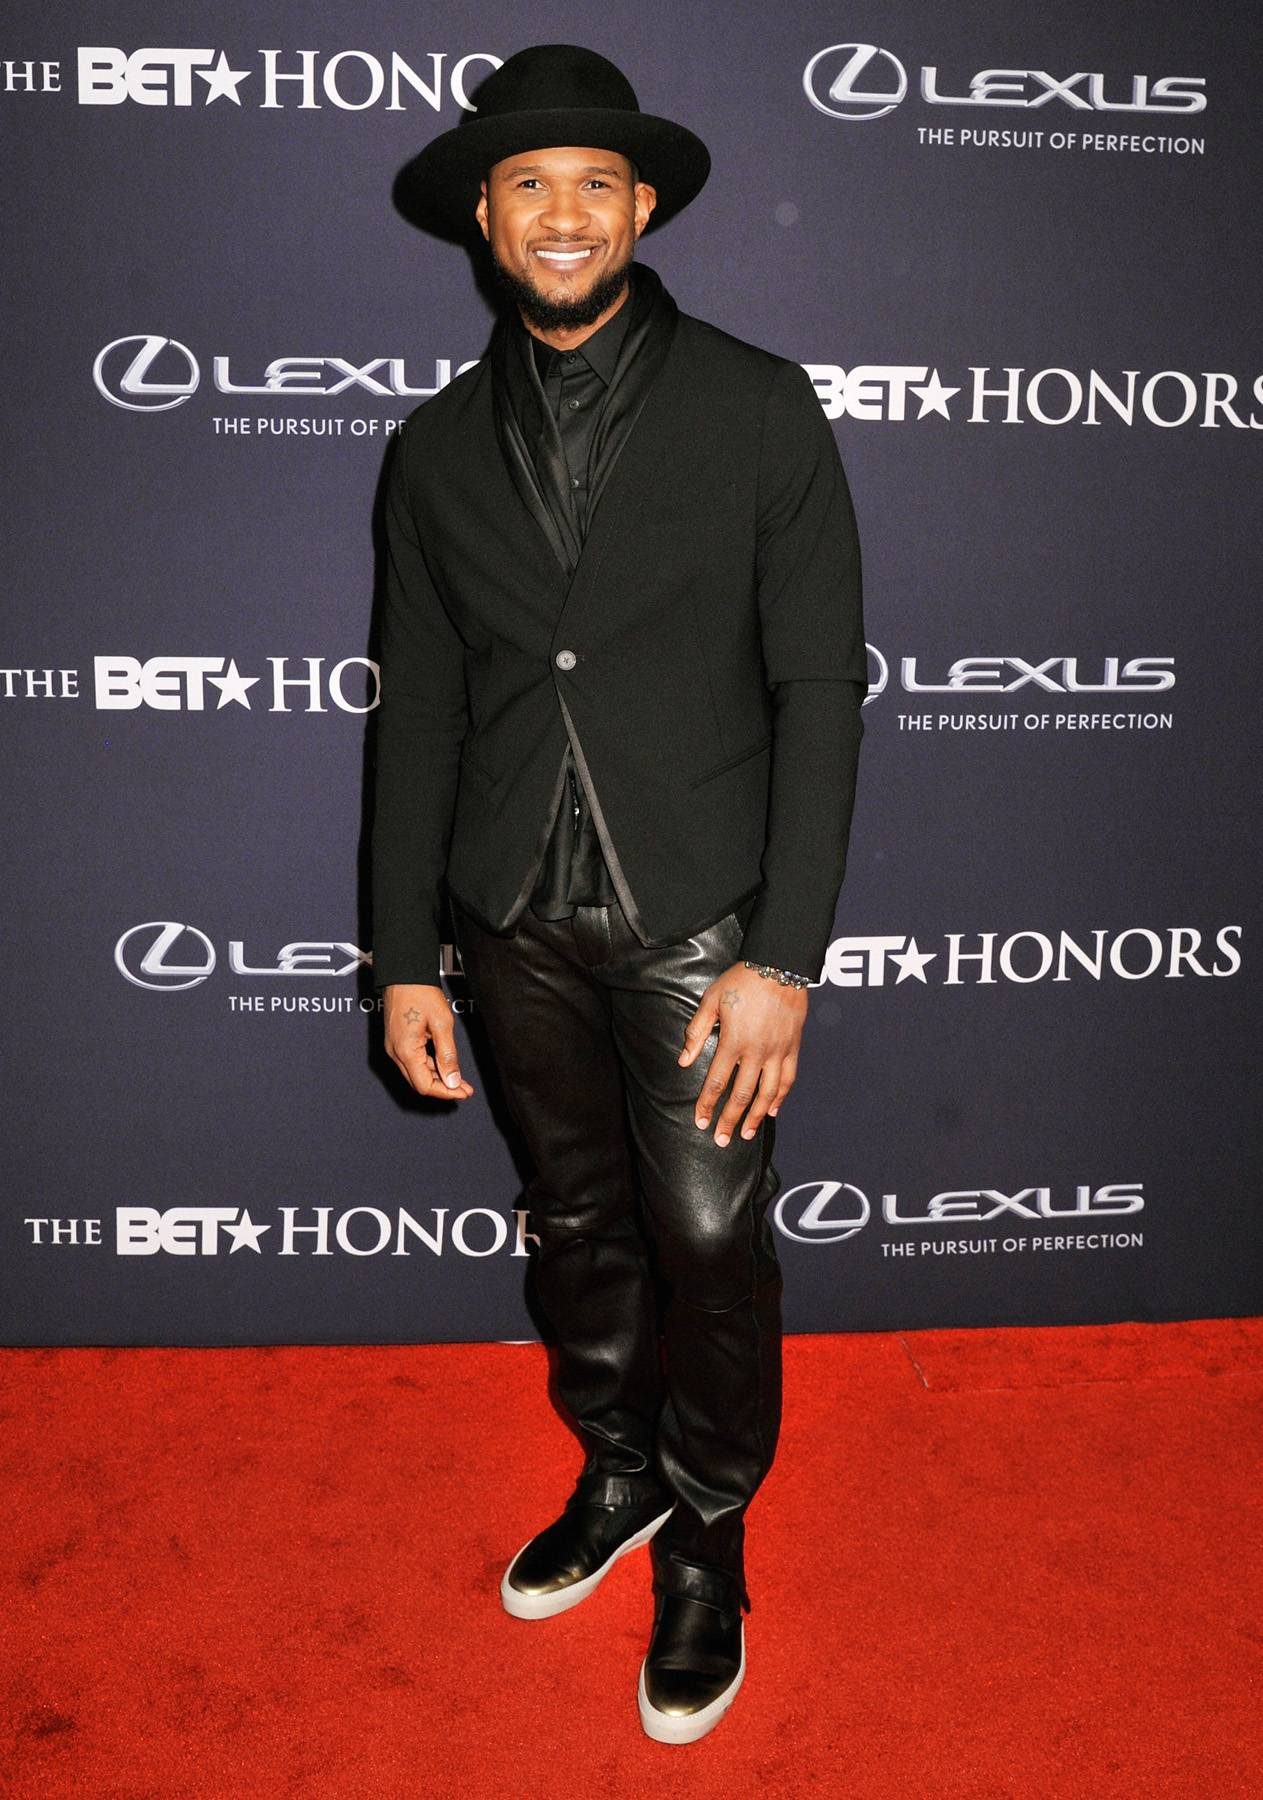 THE UR Experience  - The BET Honors Musical Award winnerUsher keeps it casual but fashionable. The hat is the key accessory that adds a stylish flair to the ensemble. (Photo:Kris Connor/BET/Getty Images for BET)